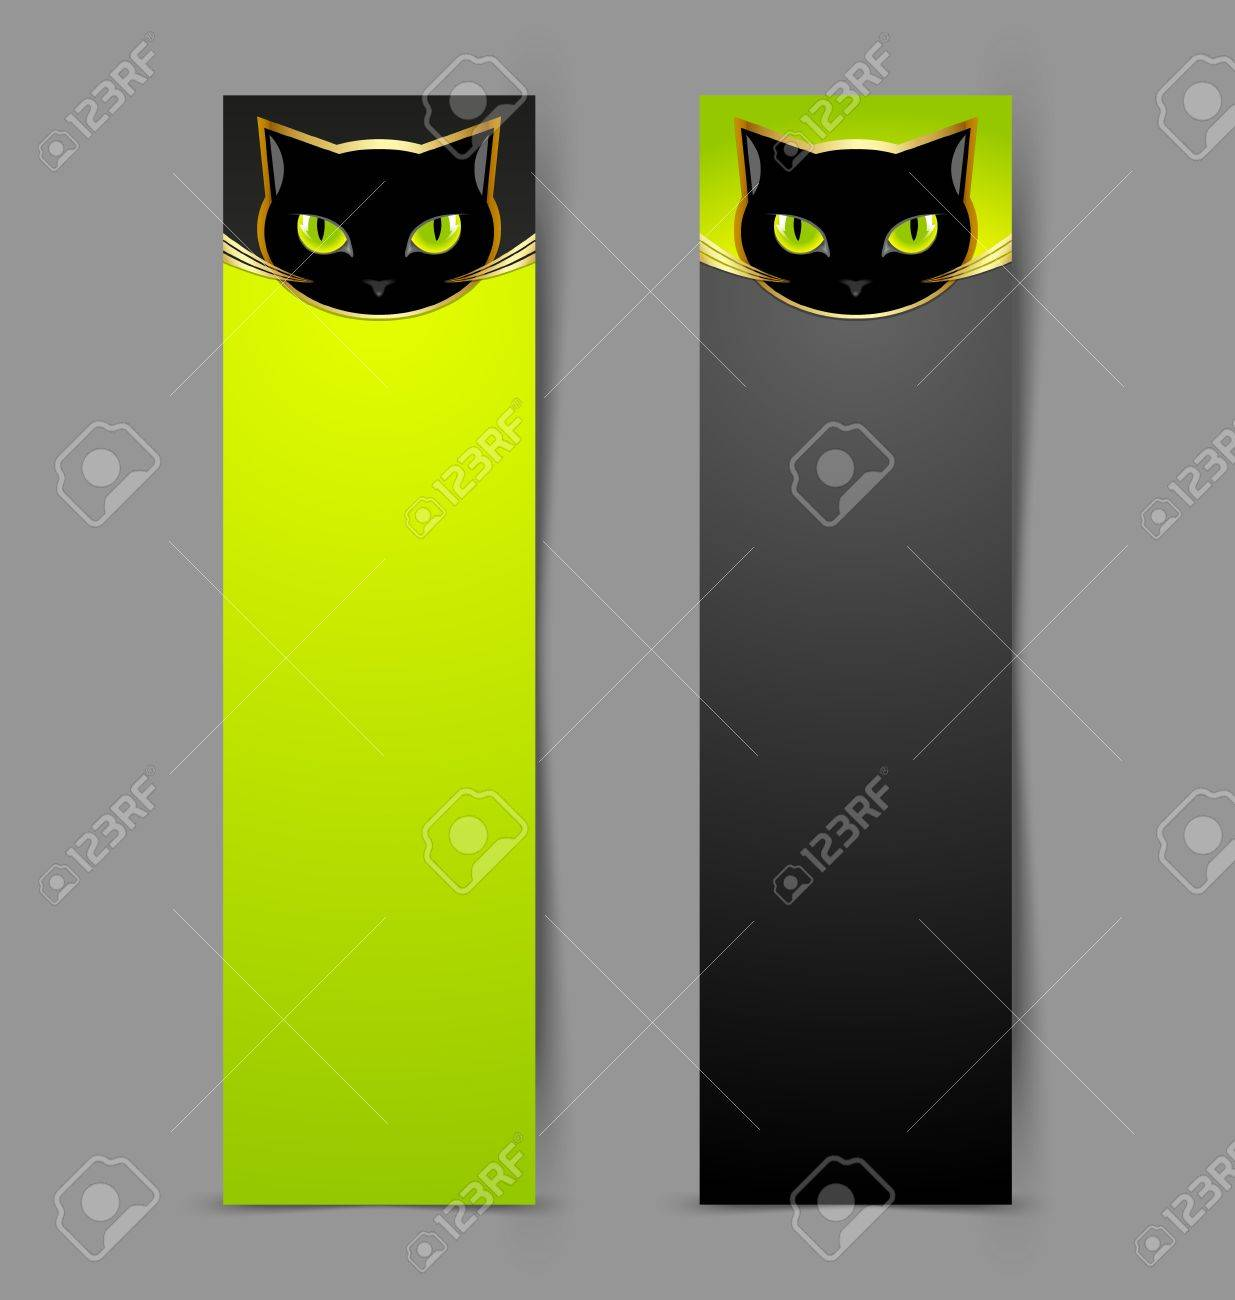 Black cat head banners isolated on grey background Stock Vector - 14487018